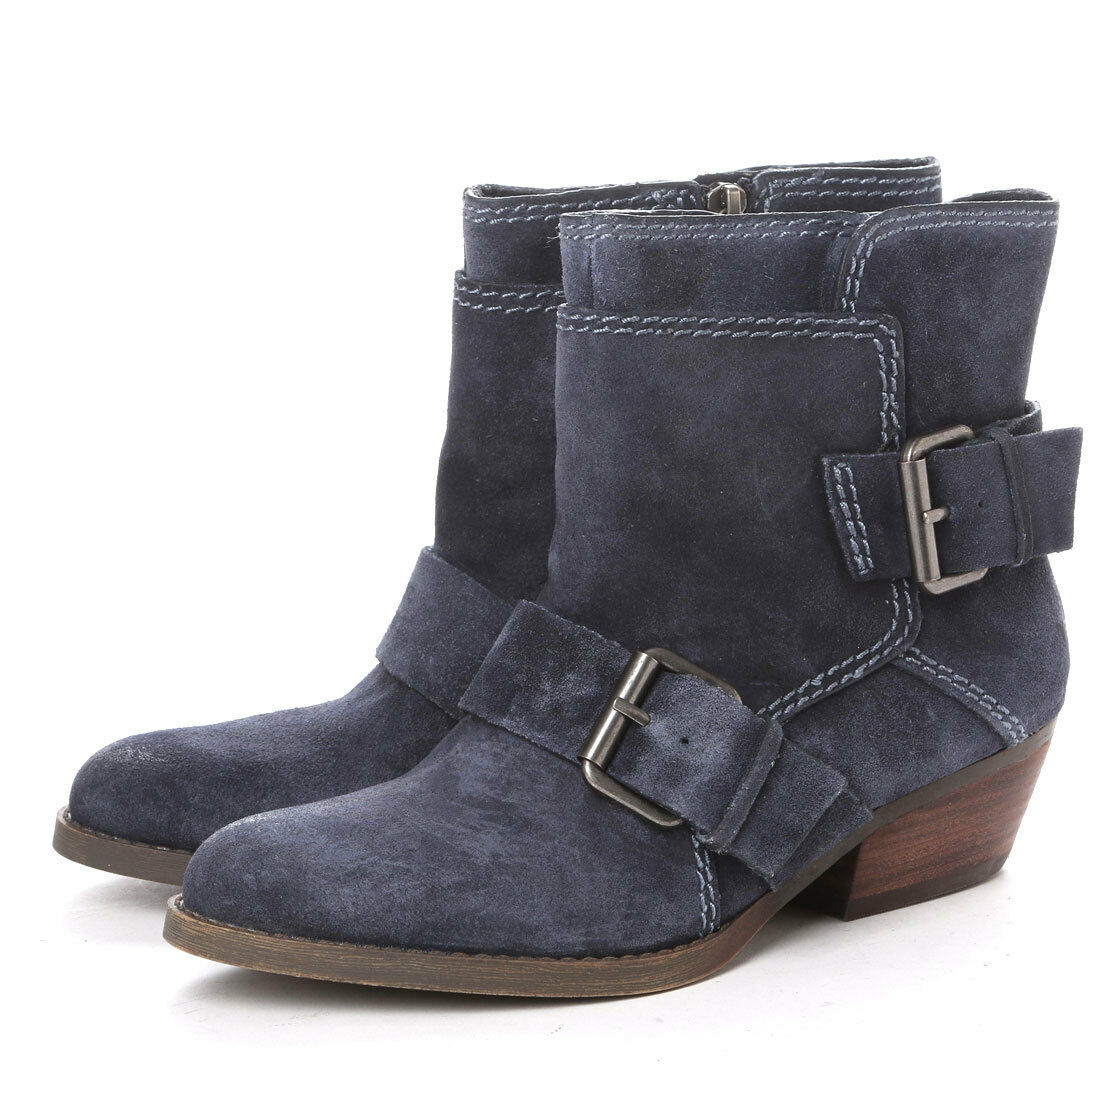 Nine West Vintage Collection Vasabady Ankle Boots Navy LN180 XX 02